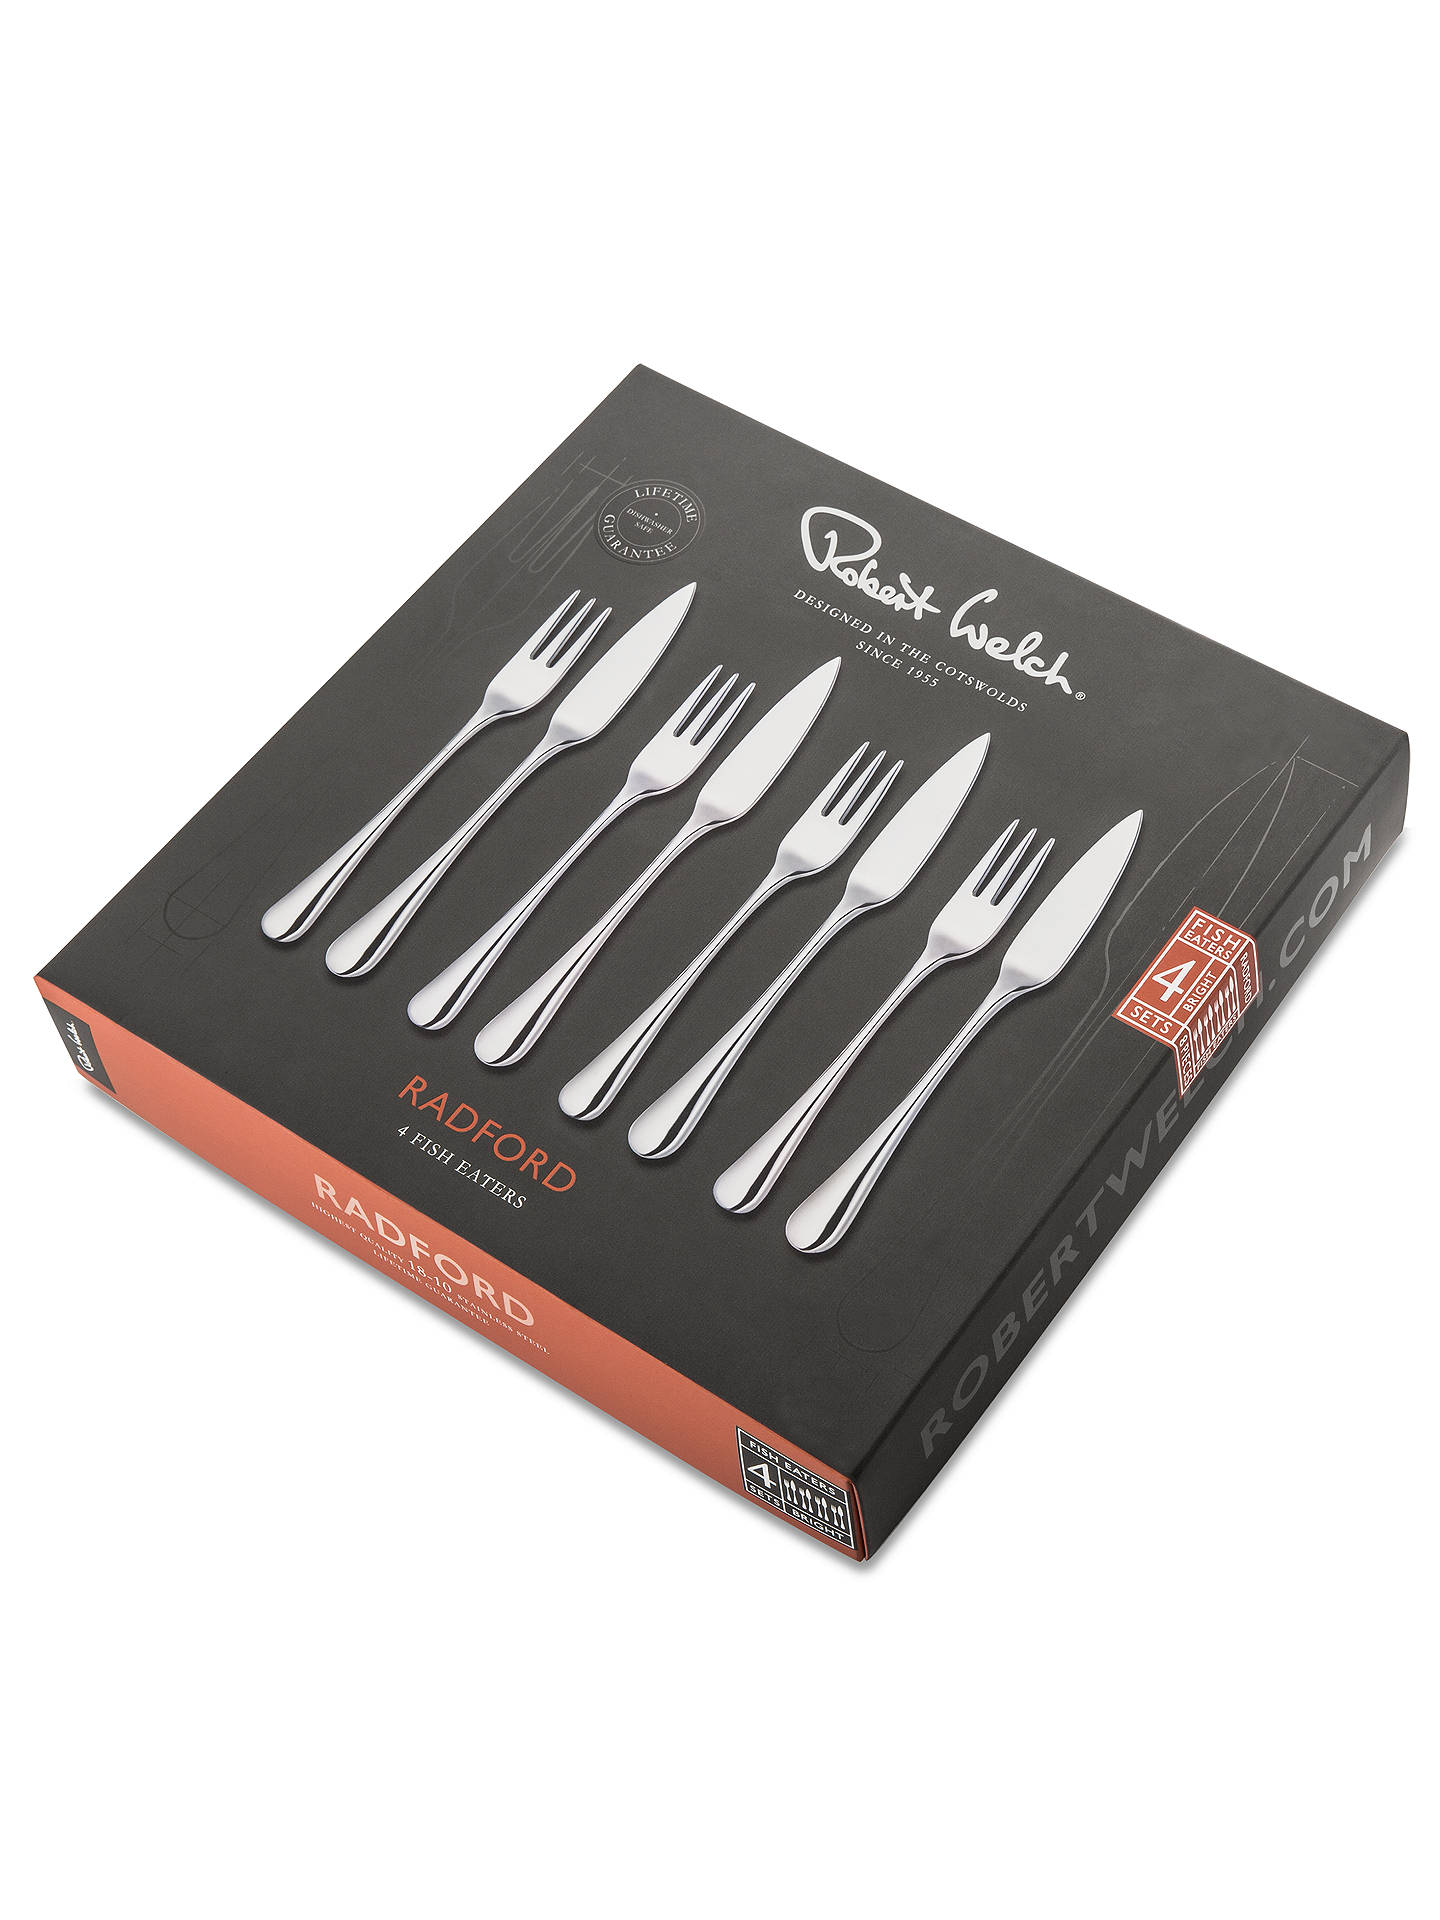 BuyRobert Welch Radford Fish Eaters Forks and Knives, 8 Piece Online at johnlewis.com